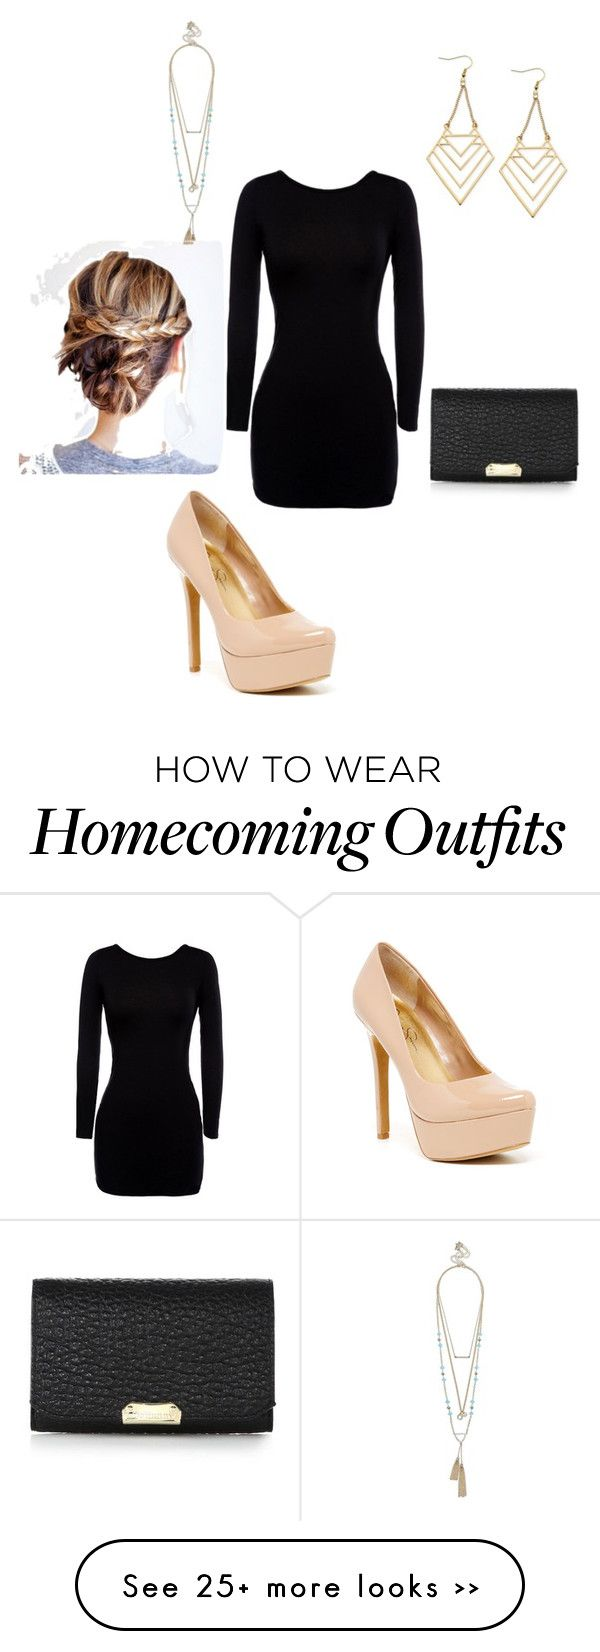 """Homecoming Outfit"" by lillyburkhart on Polyvore"